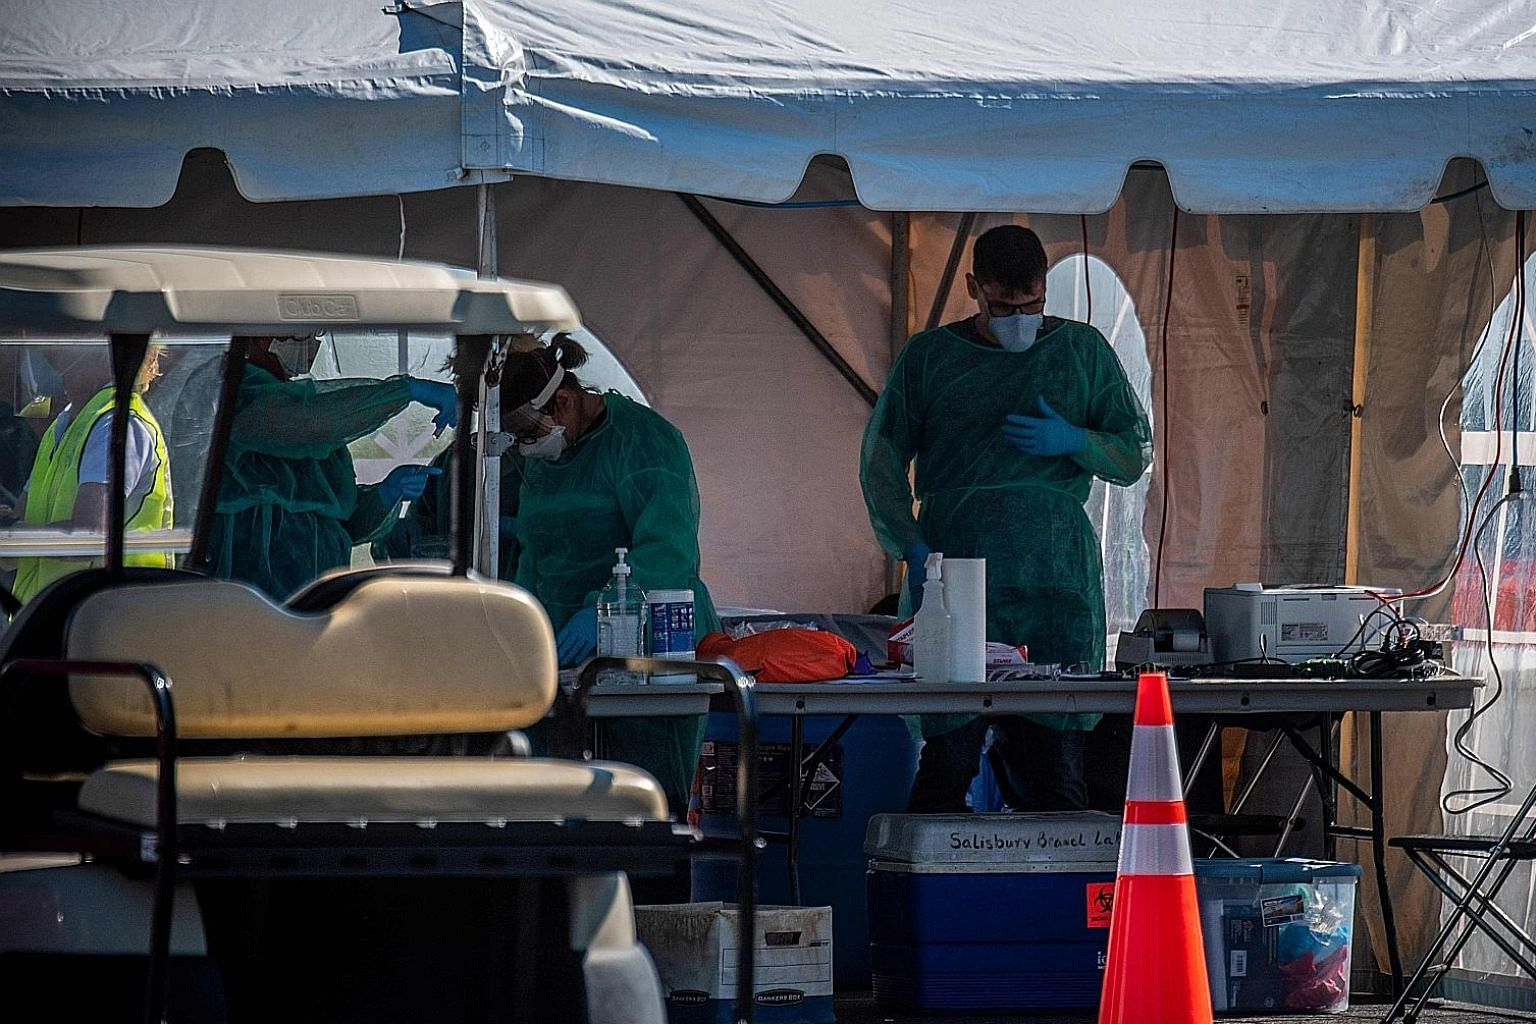 A Covid-19 drive-in testing site in Salisbury in America's Maryland state. A US study suggests easing lockdowns by the end of June may save 18 million jobs in the US but add over 200,000 virus deaths. PHOTO: AGENCE FRANCE-PRESSE